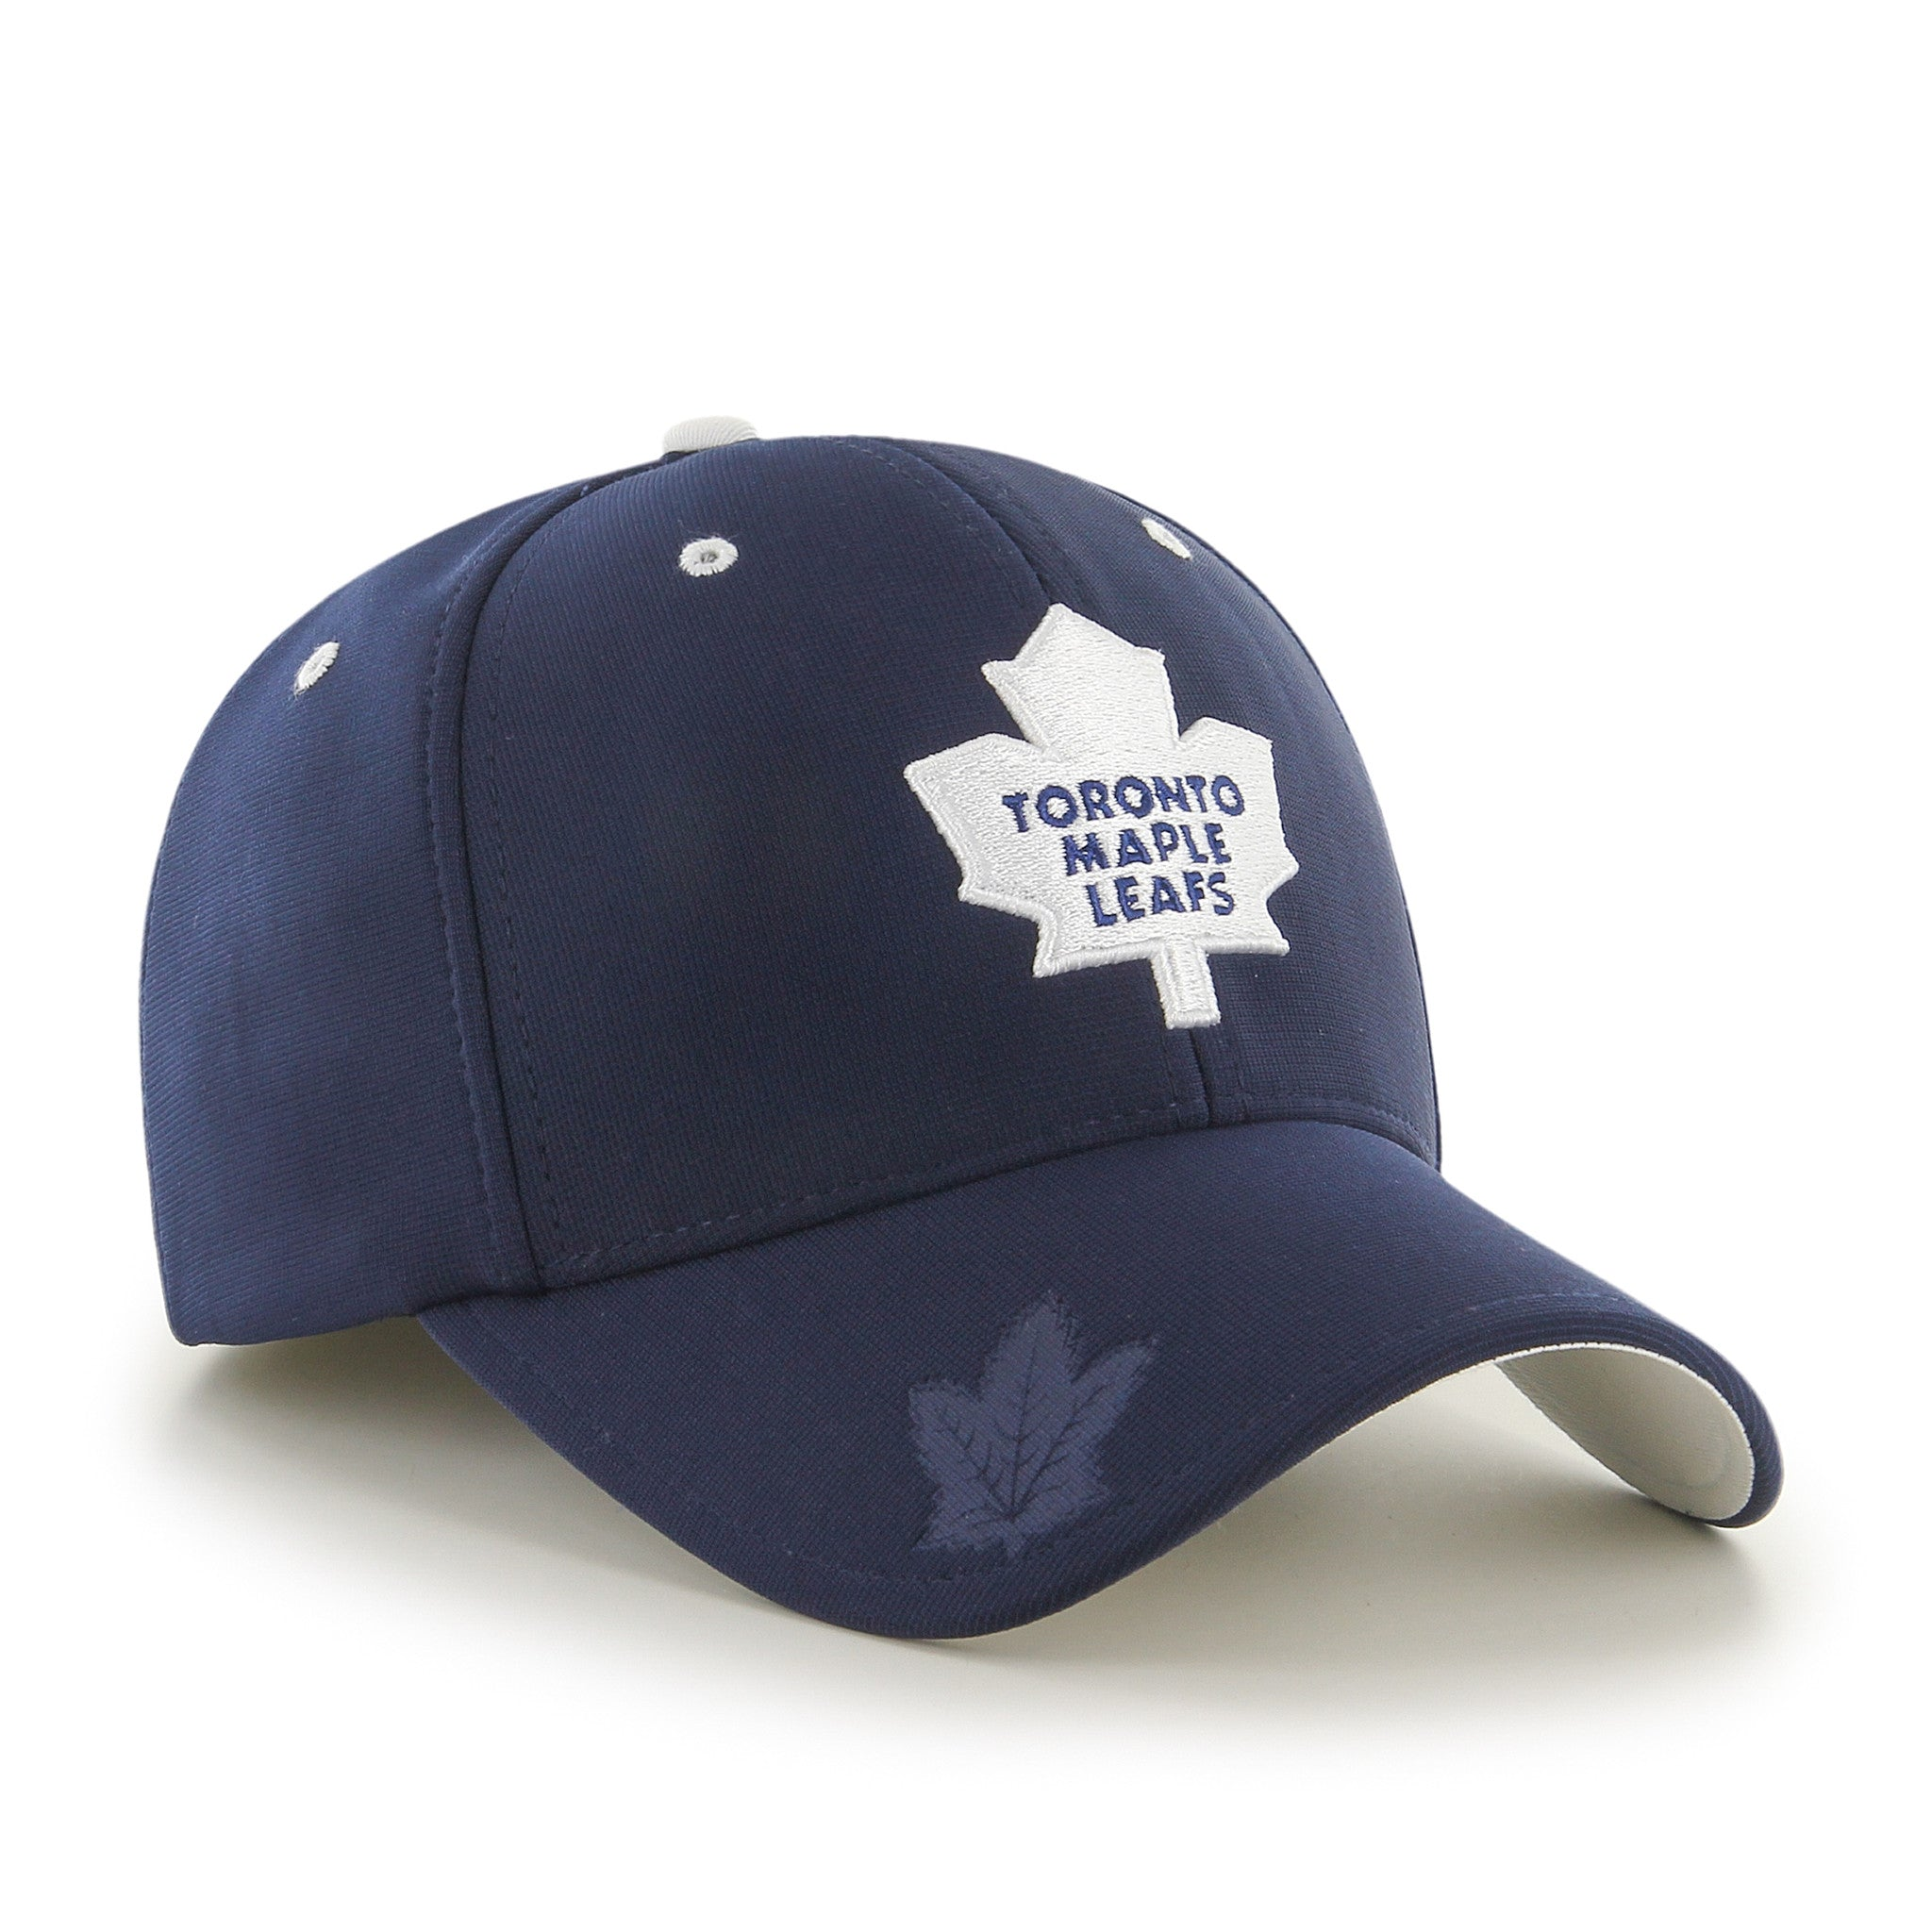 12c73d5e77e Toronto Maple Leafs Big Boss Cap – Sport Army